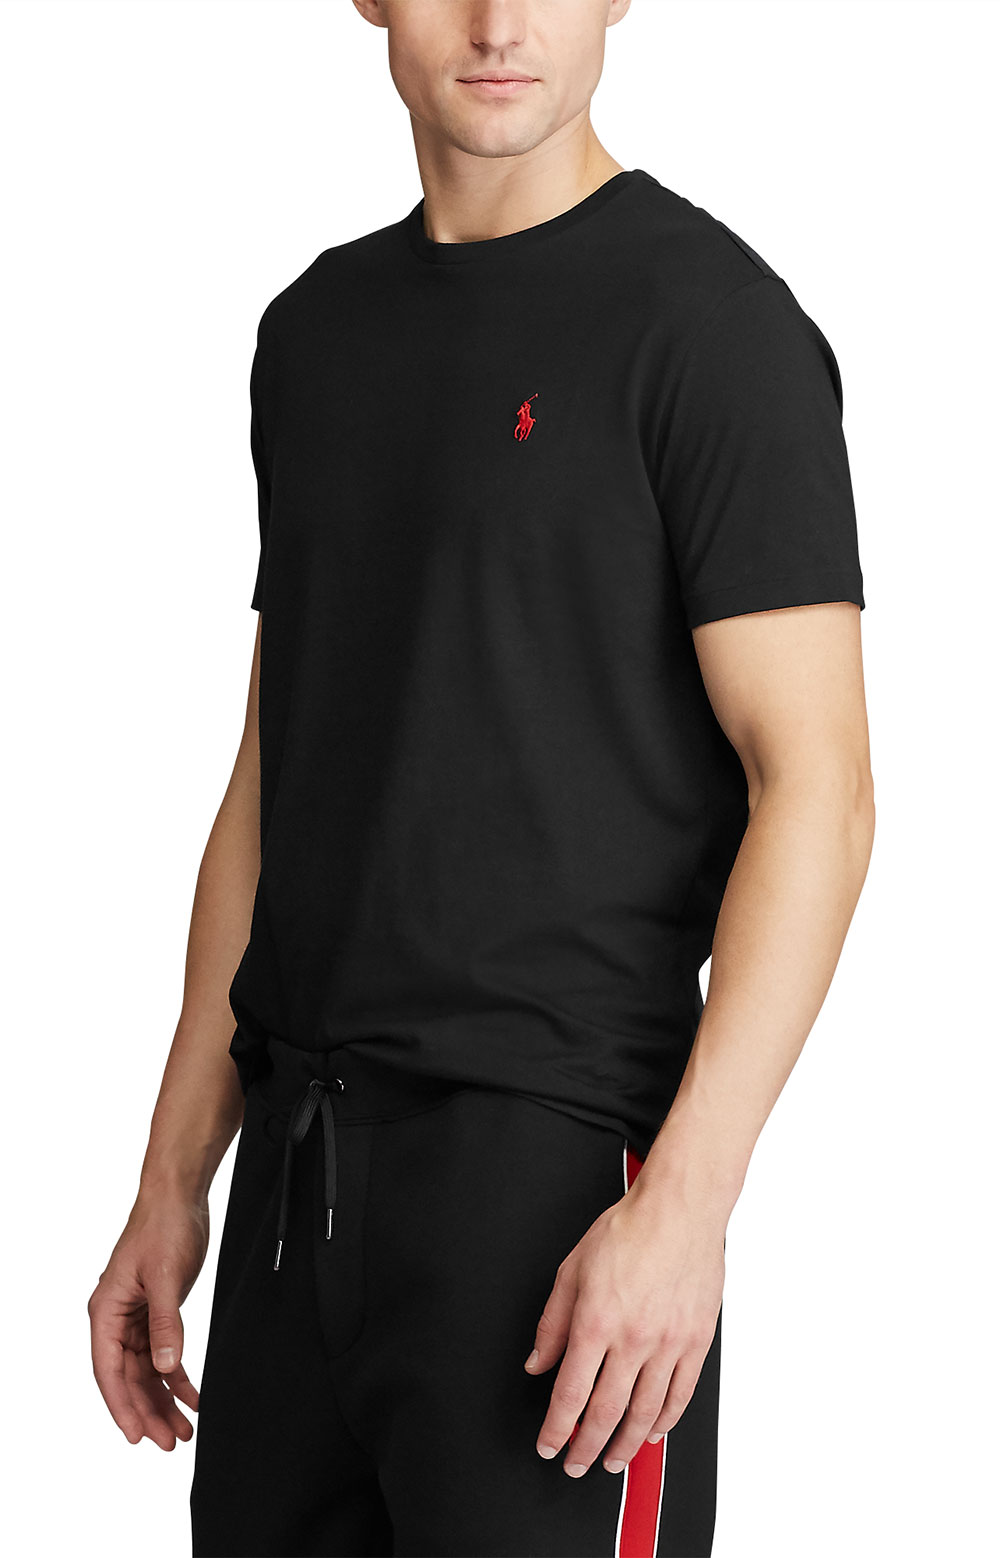 Active Fit Cotton T-Shirt - Black 3